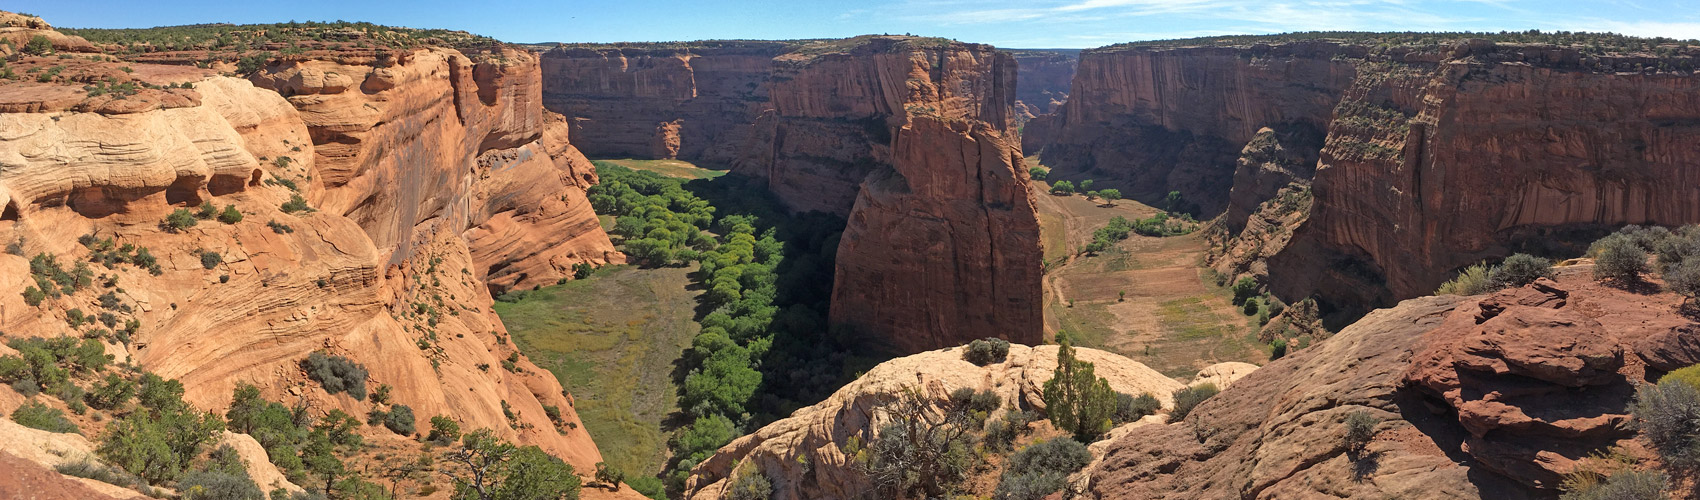 Canyon de Chelly - Overlook